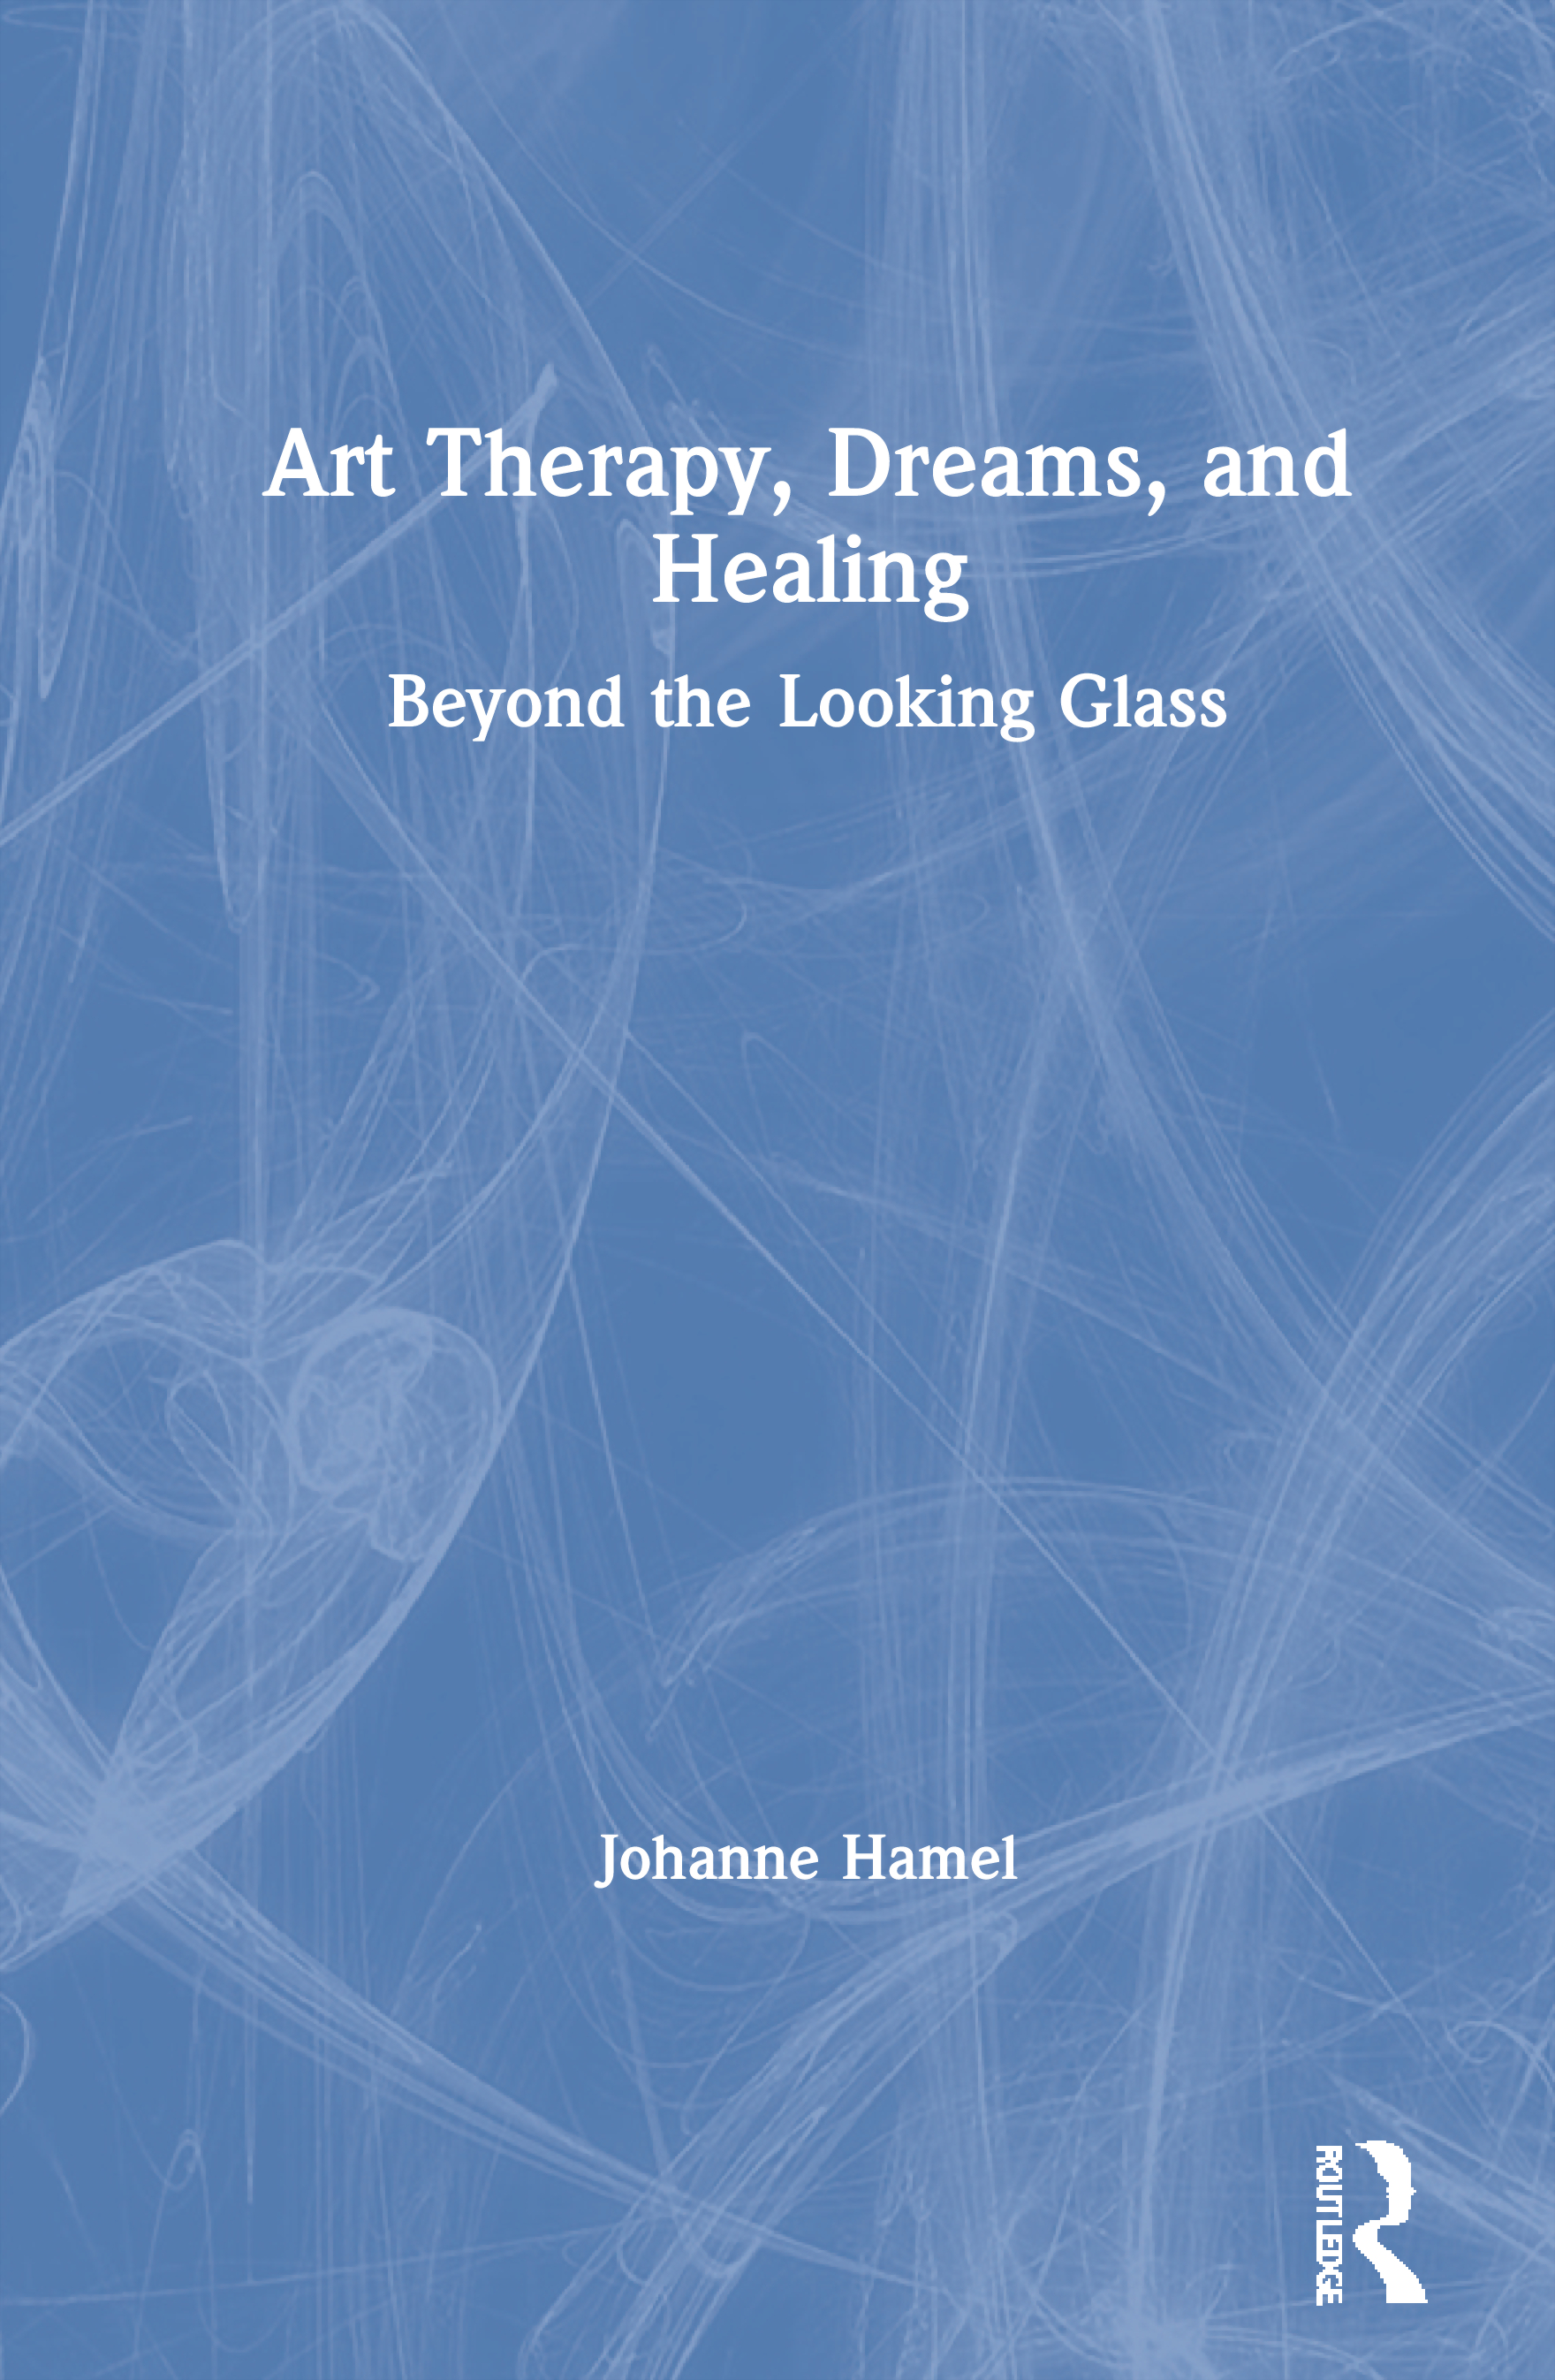 Art Therapy, Dreams, and Healing: Beyond the Looking Glass, 1st Edition (Paperback) book cover